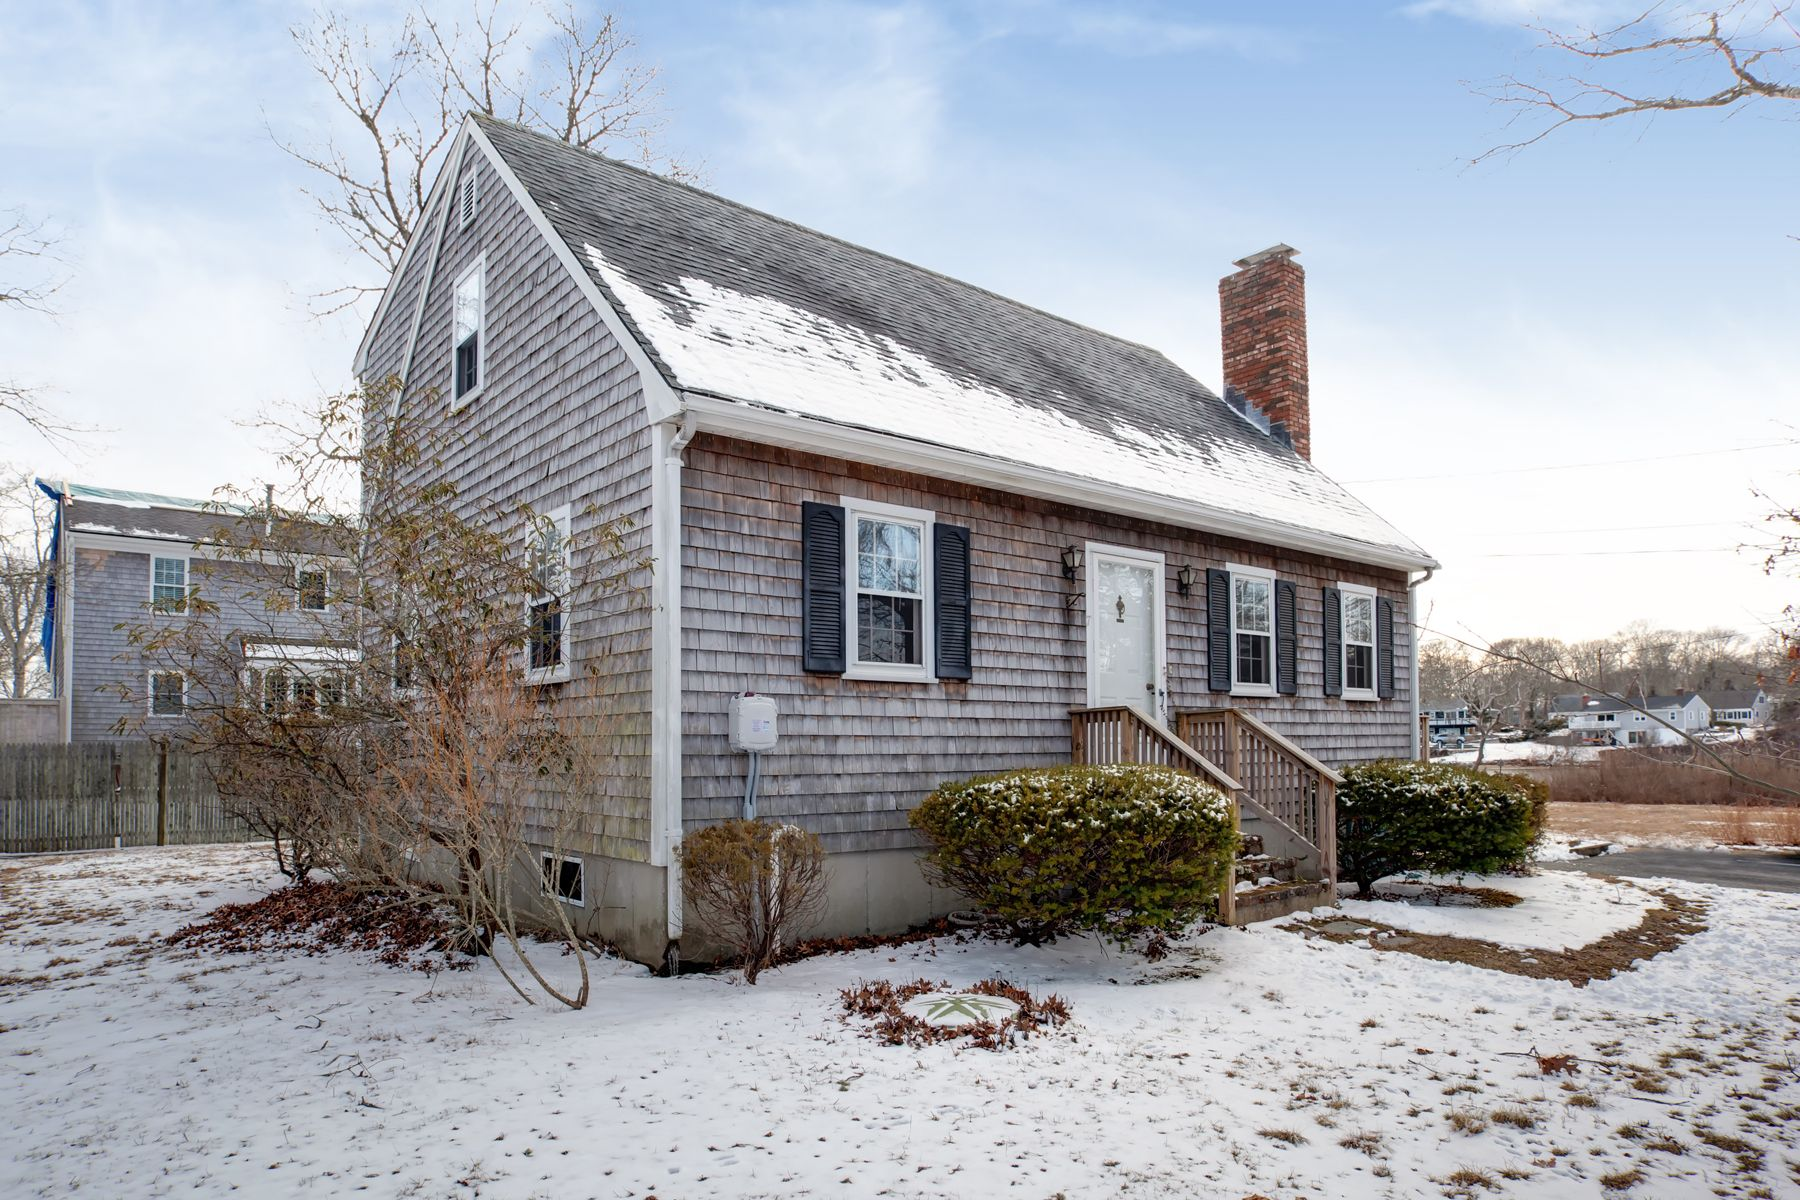 Single Family Home for Active at 7 Reynolds Street East Falmouth, Massachusetts 02536 United States